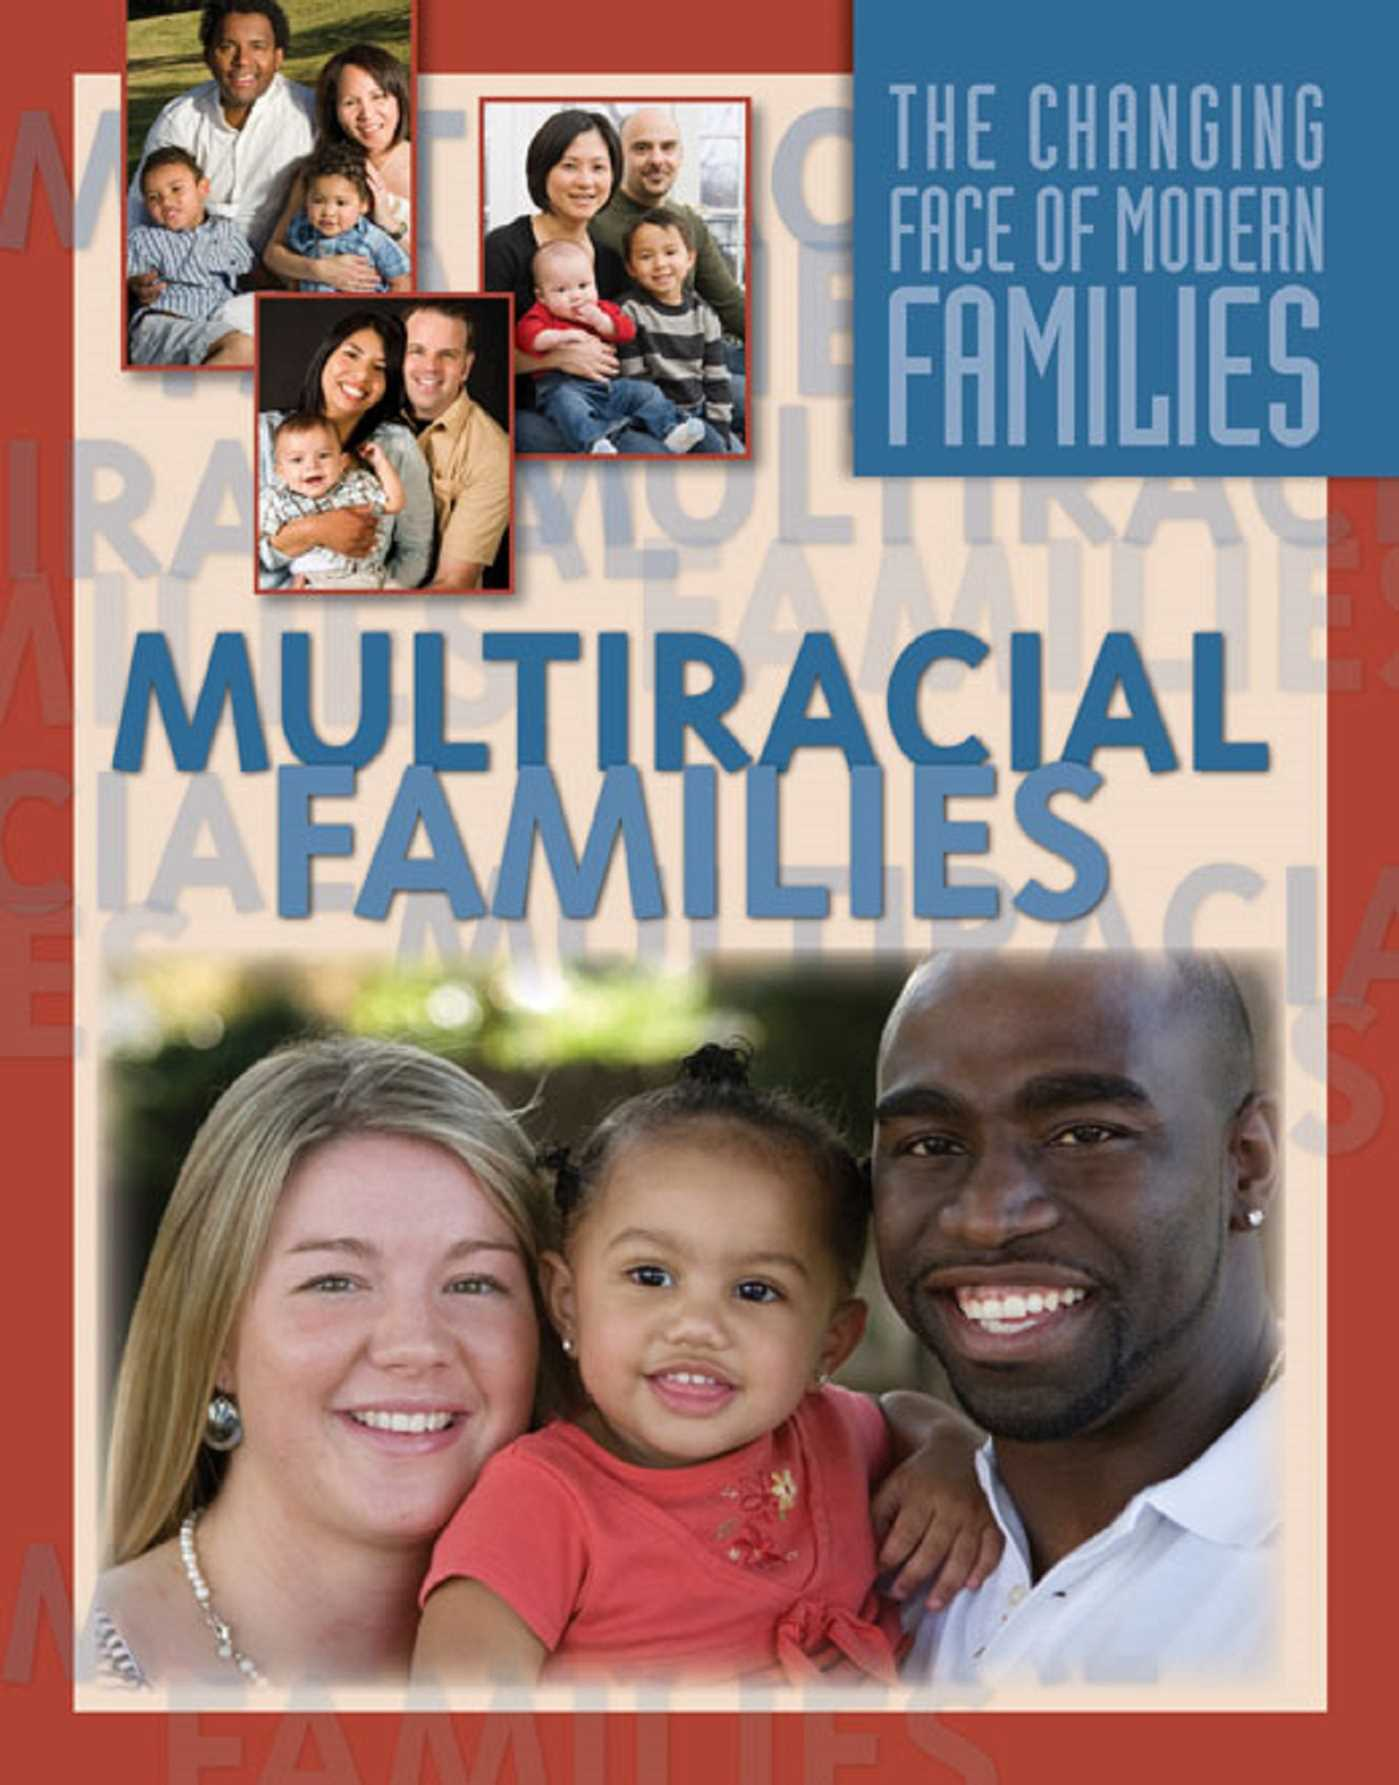 Multiracial families challenges